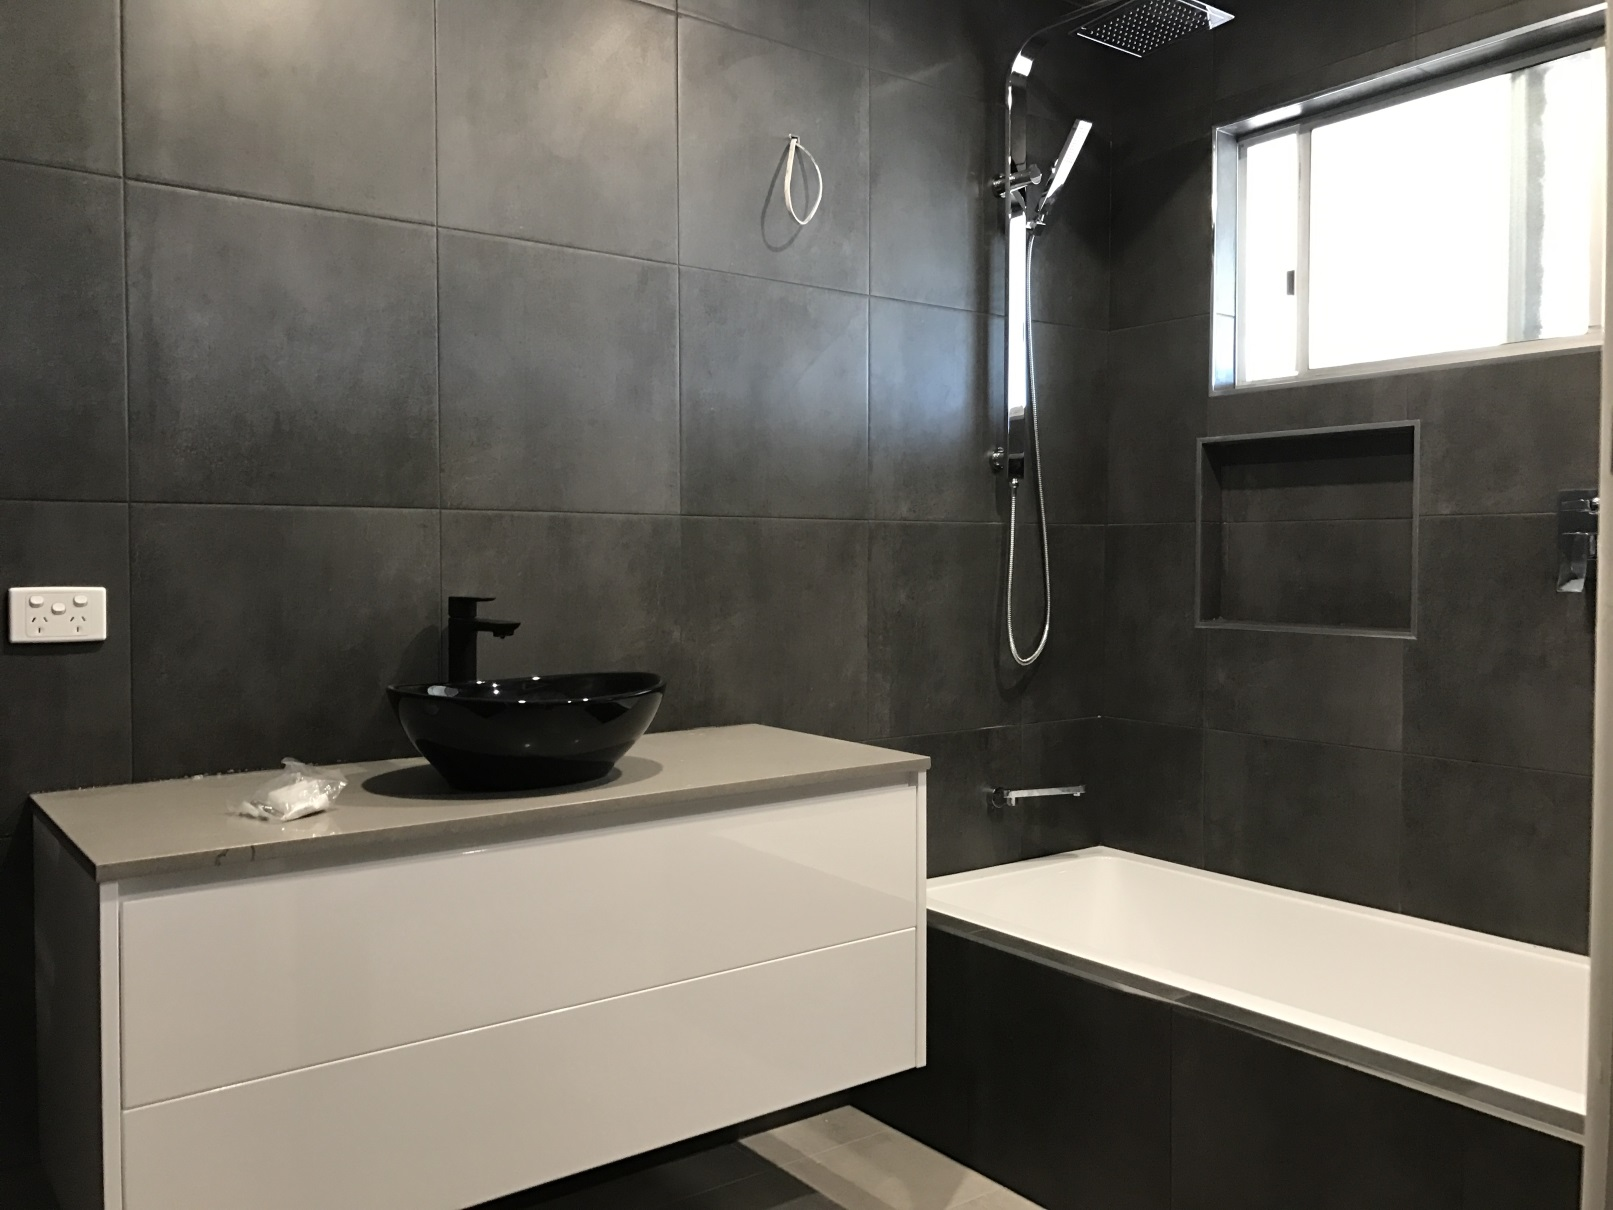 Arana hills brisbane bathroom renovations 2 1 bathroom for Lifestyle bathroom renovations